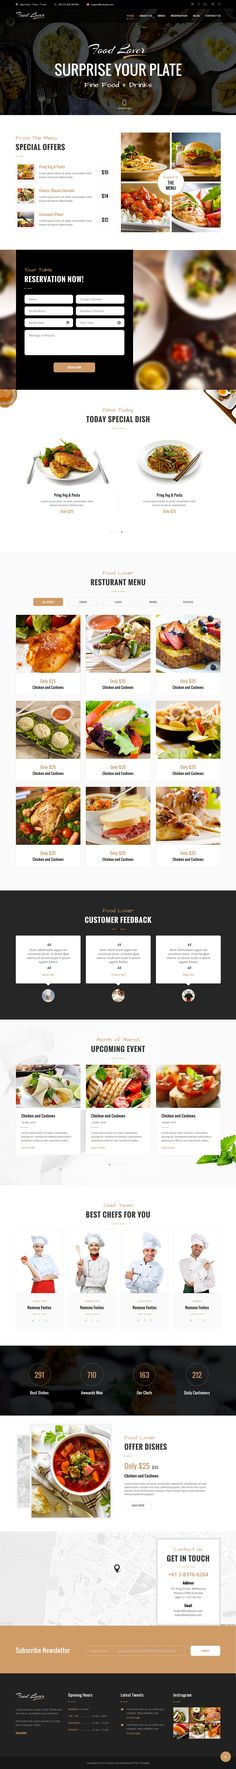 Food lover is modern and beautiful #Bootstrap template for #restaurant, bakery, #pastry shop, coffee shop, #food court or catering service and food business website download now➯ https://themeforest.net/item/food-lover-restaurant-html-template/16955420?ref=Datasata